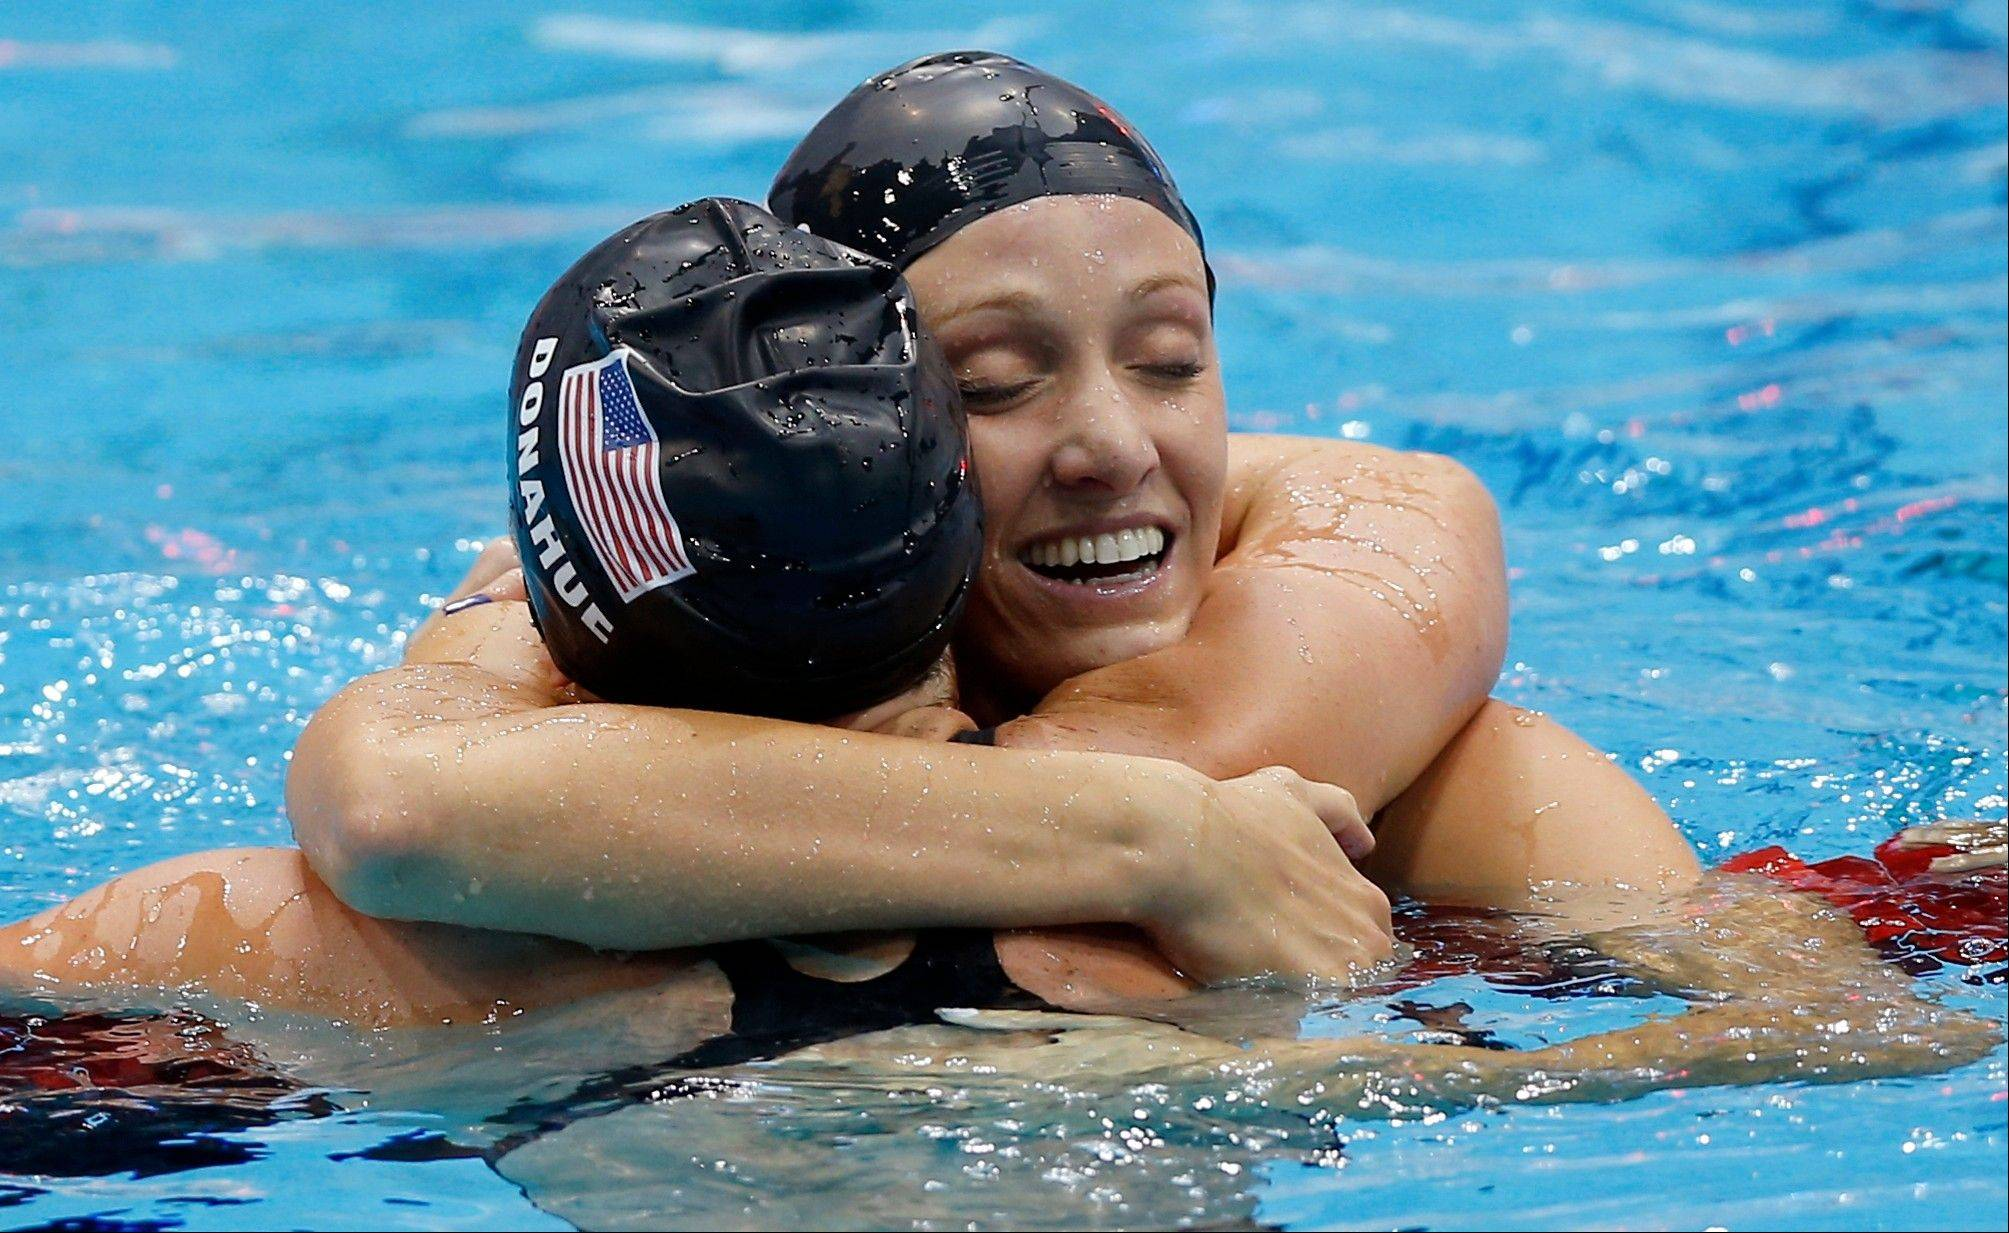 United States swimmer Dana Vollmer embraces teammate Claire Donahue after Vollmer's gold medal win in the he women's 100-meter butterfly swimming final at the Aquatics Centre in the Olympic Park during the 2012 Summer Olympics in London, Sunday.